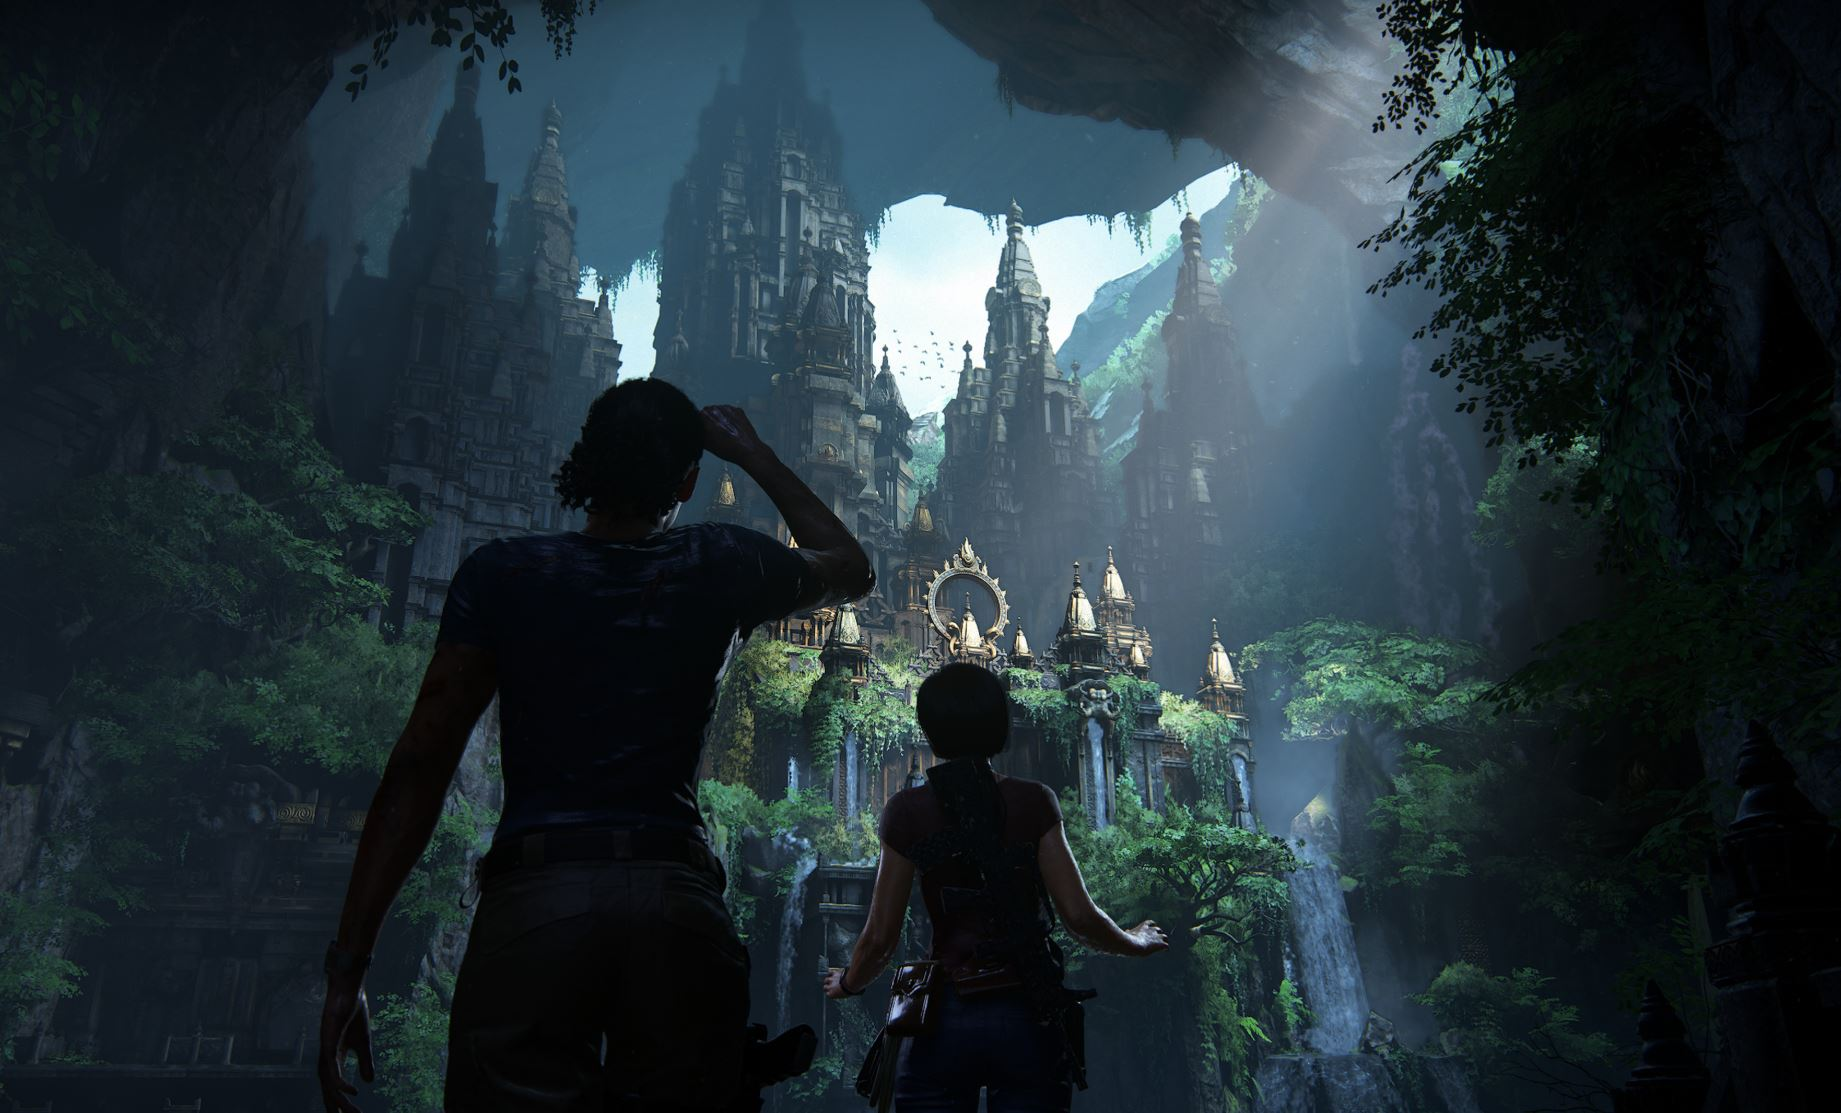 PS4 hits like Uncharted: Lost Legacy will be playable on PS5 via backwards compatibility.